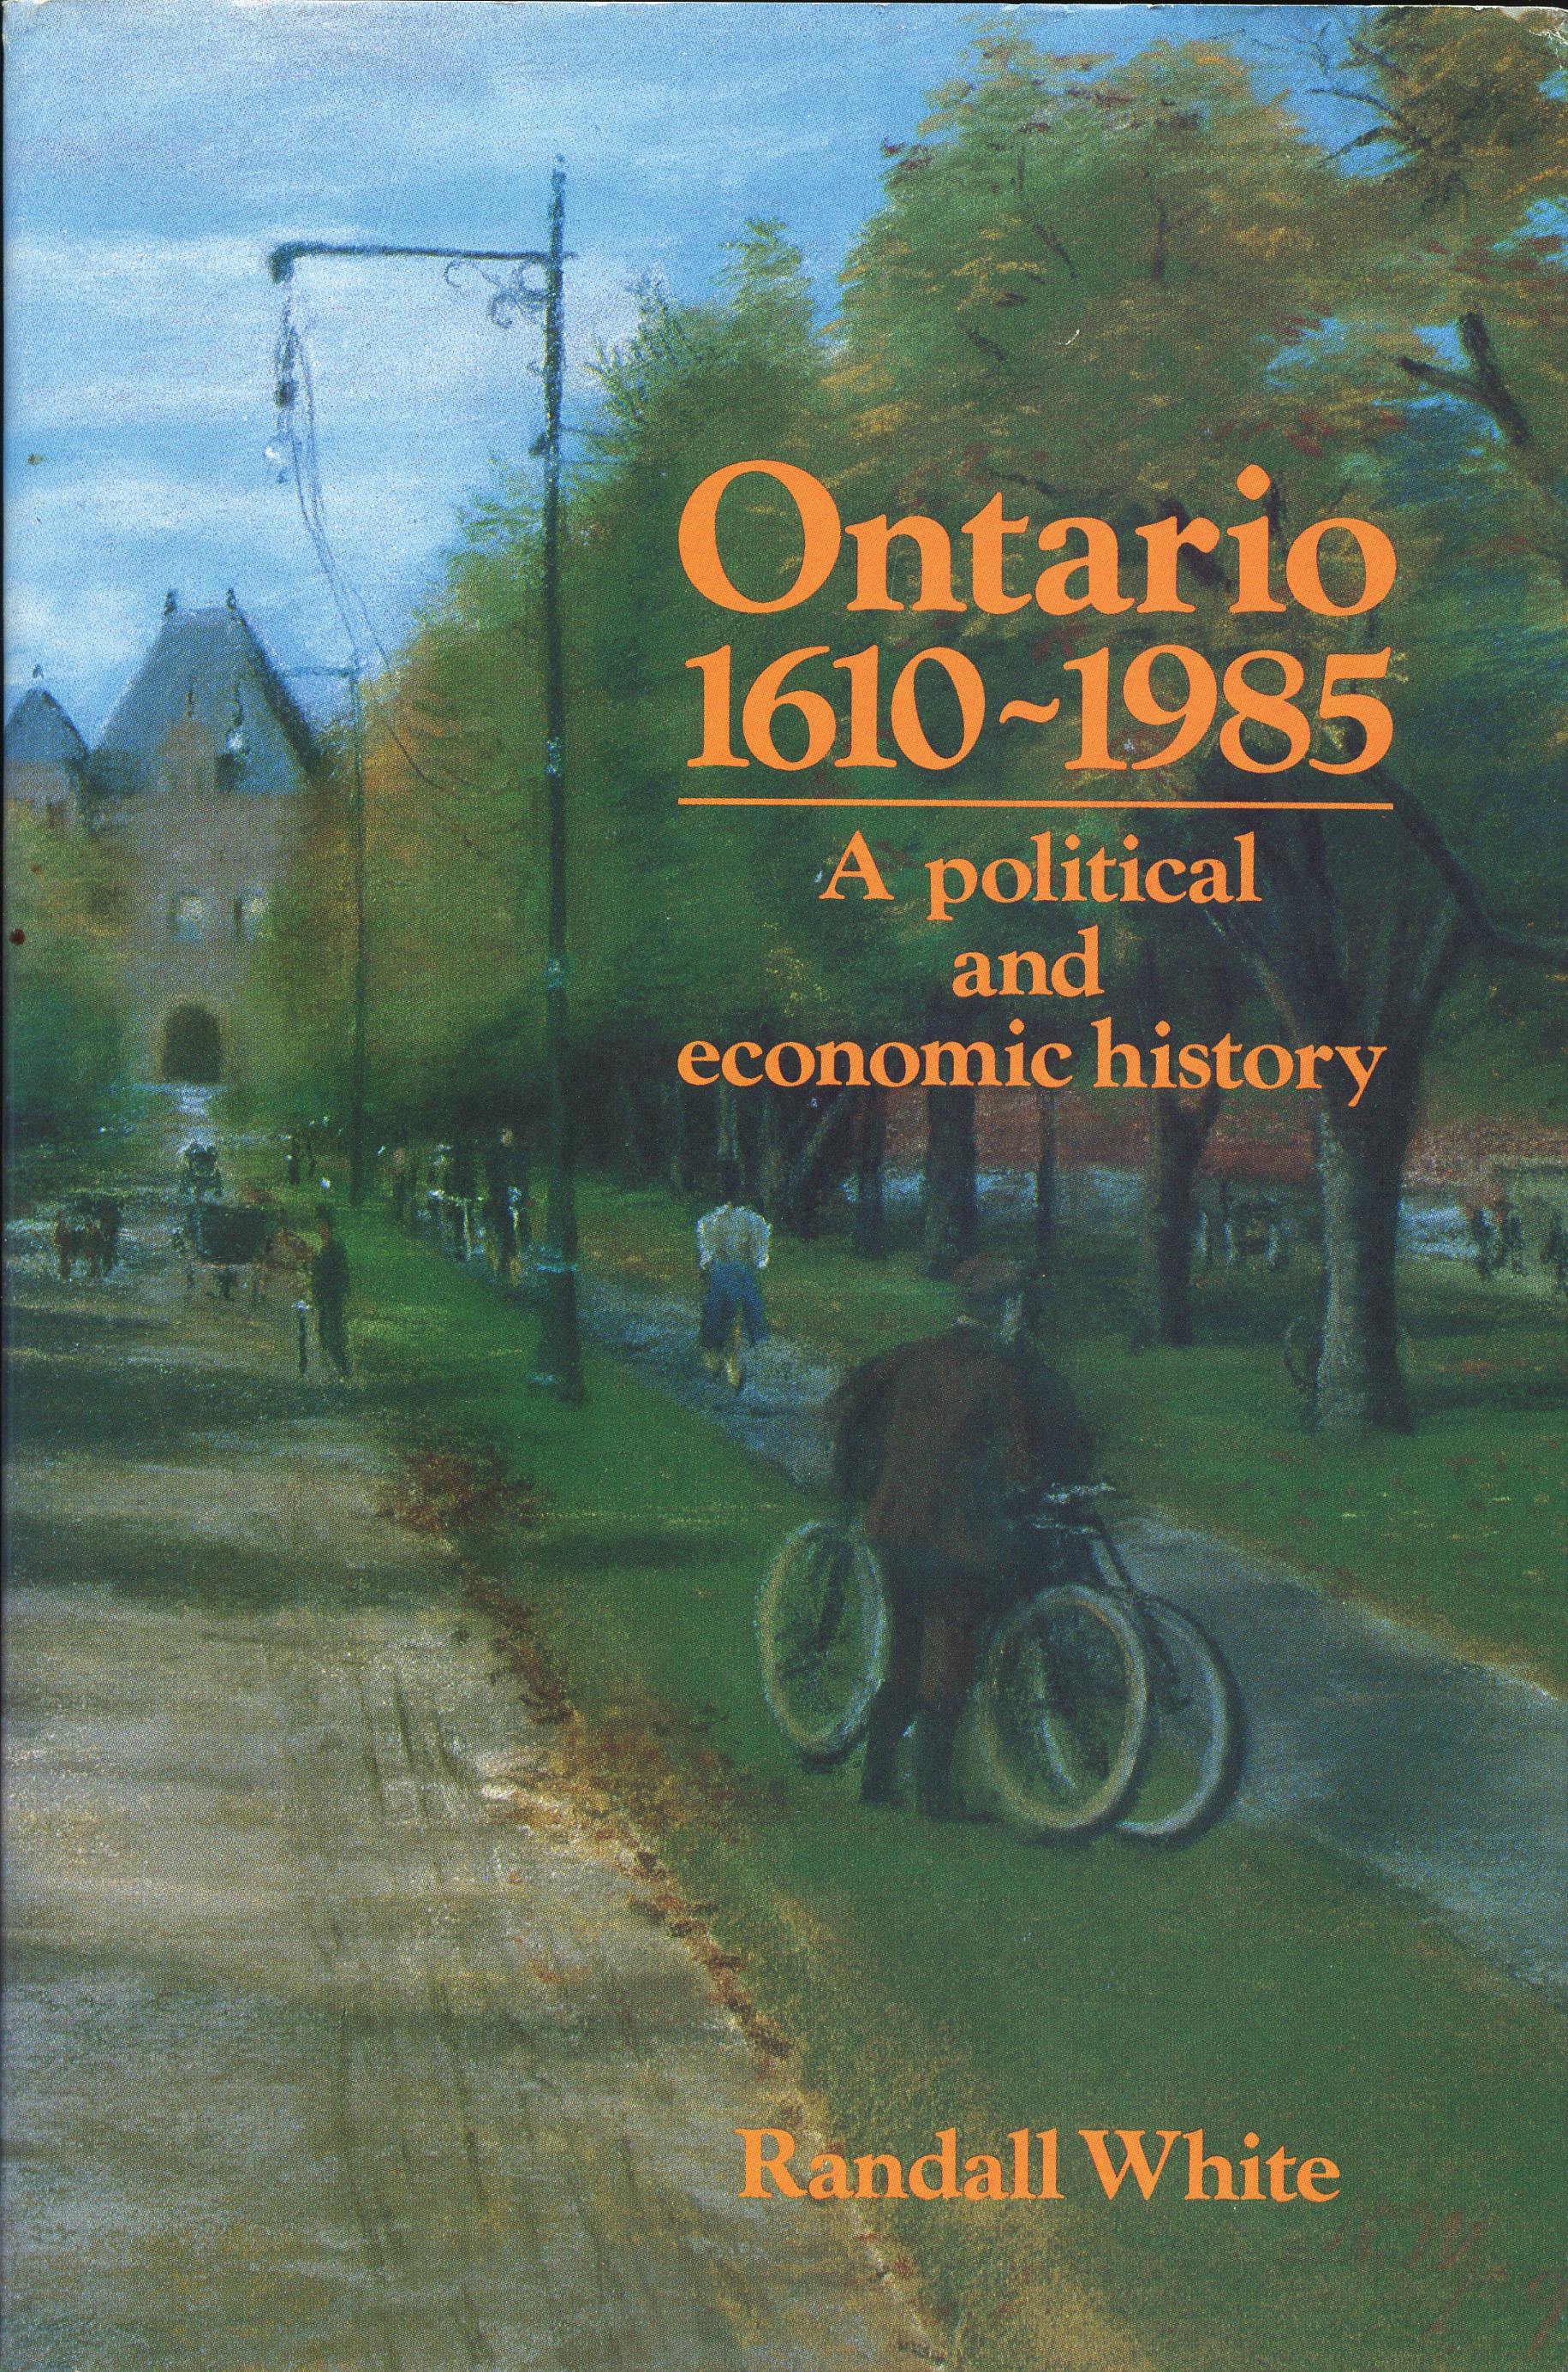 Ontario 1610-1985 By: Randall White